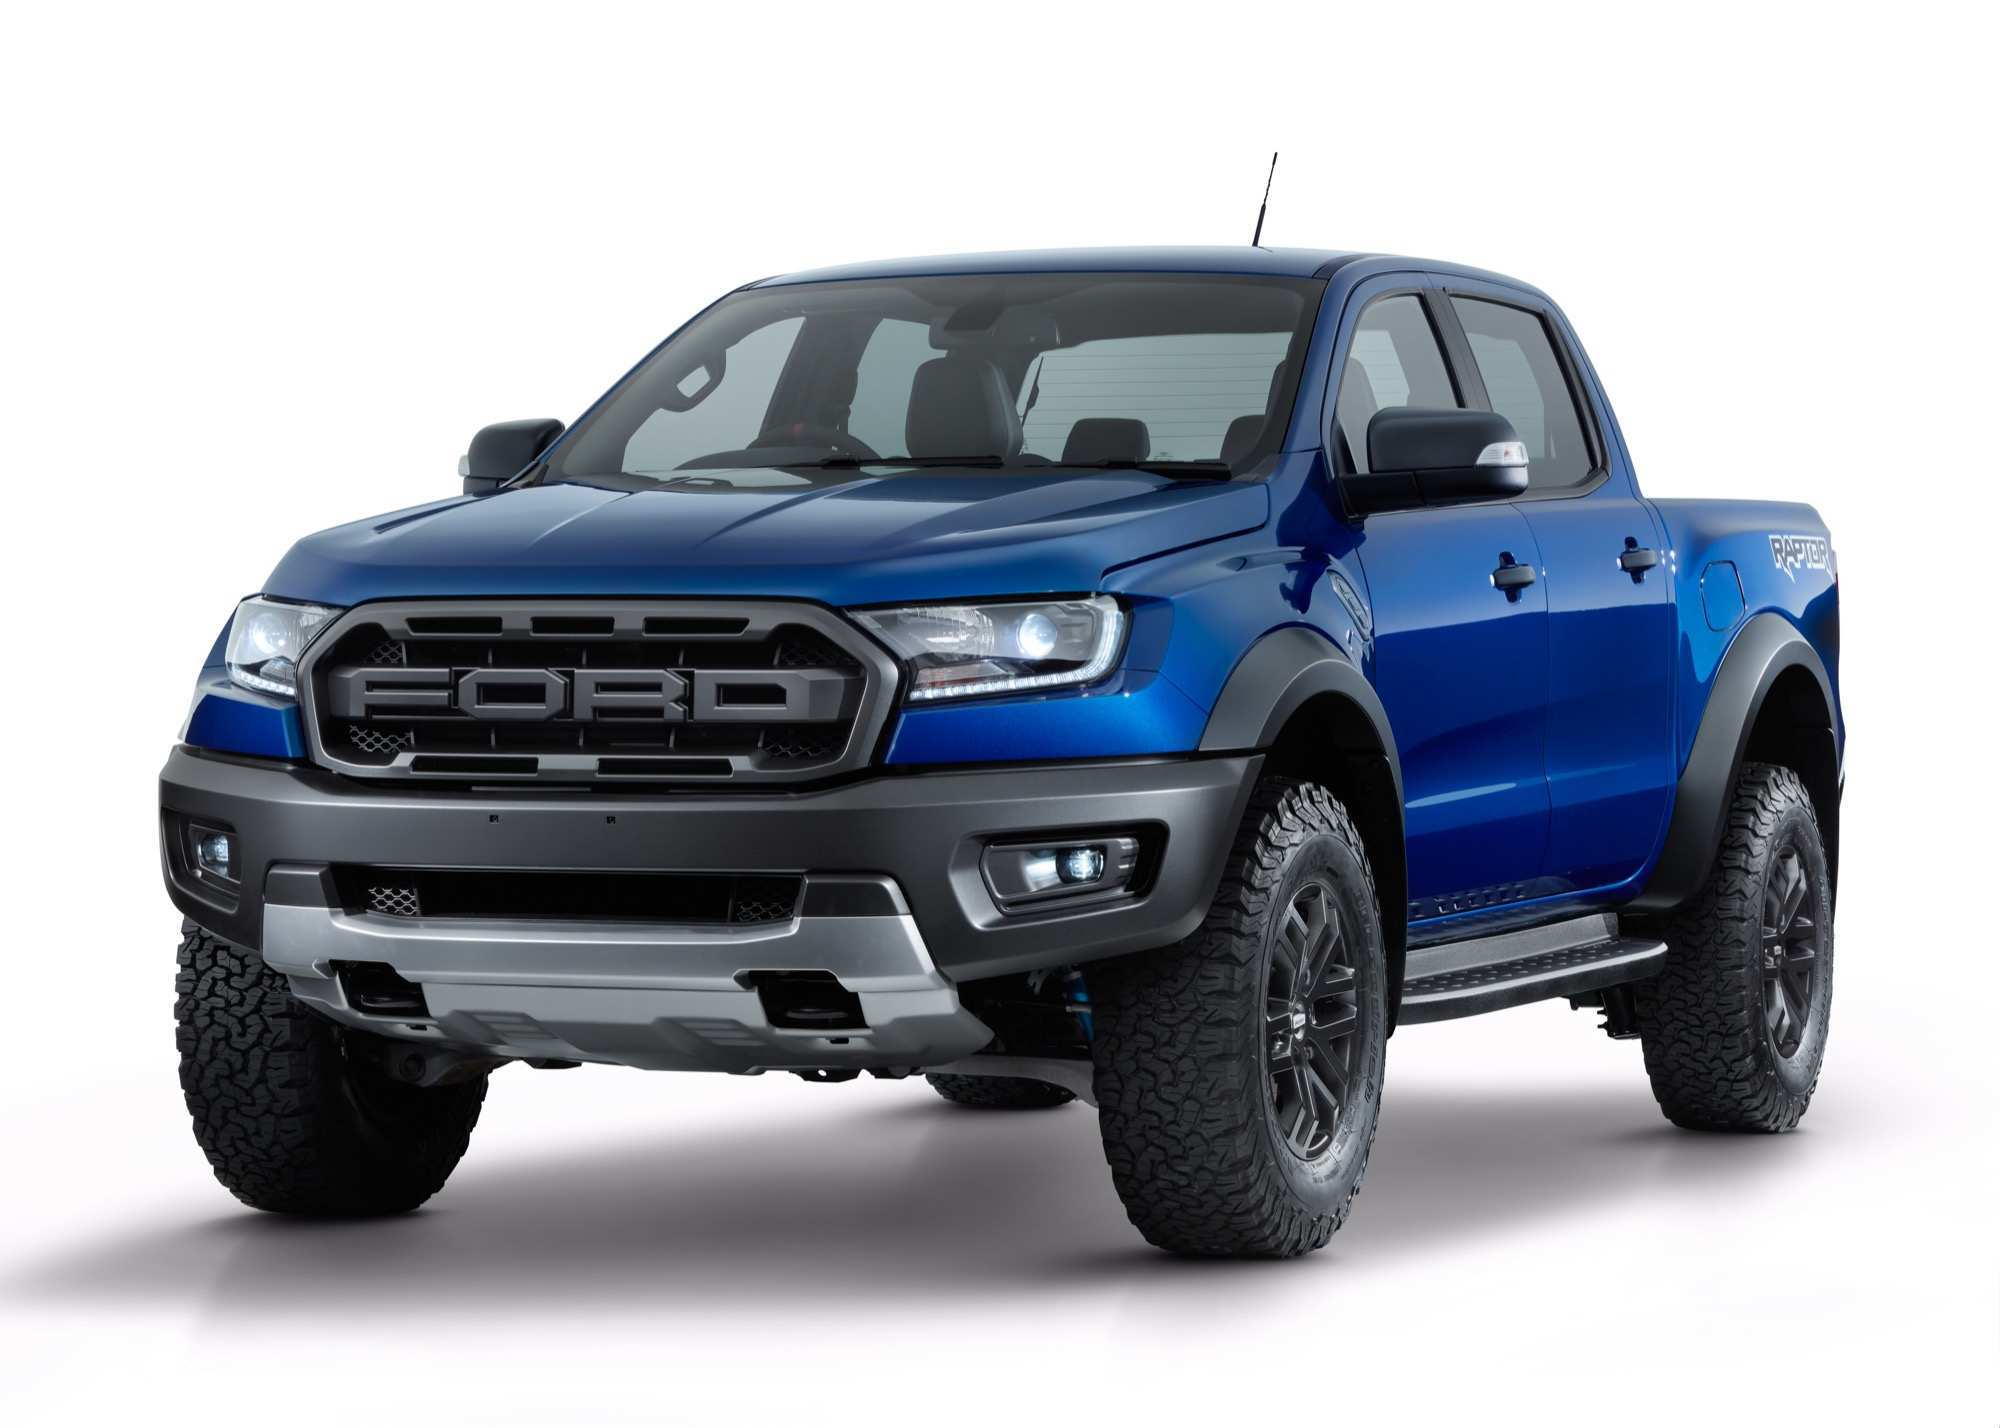 20 Great 2020 Ford Ranger Specs Pricing for 2020 Ford Ranger Specs